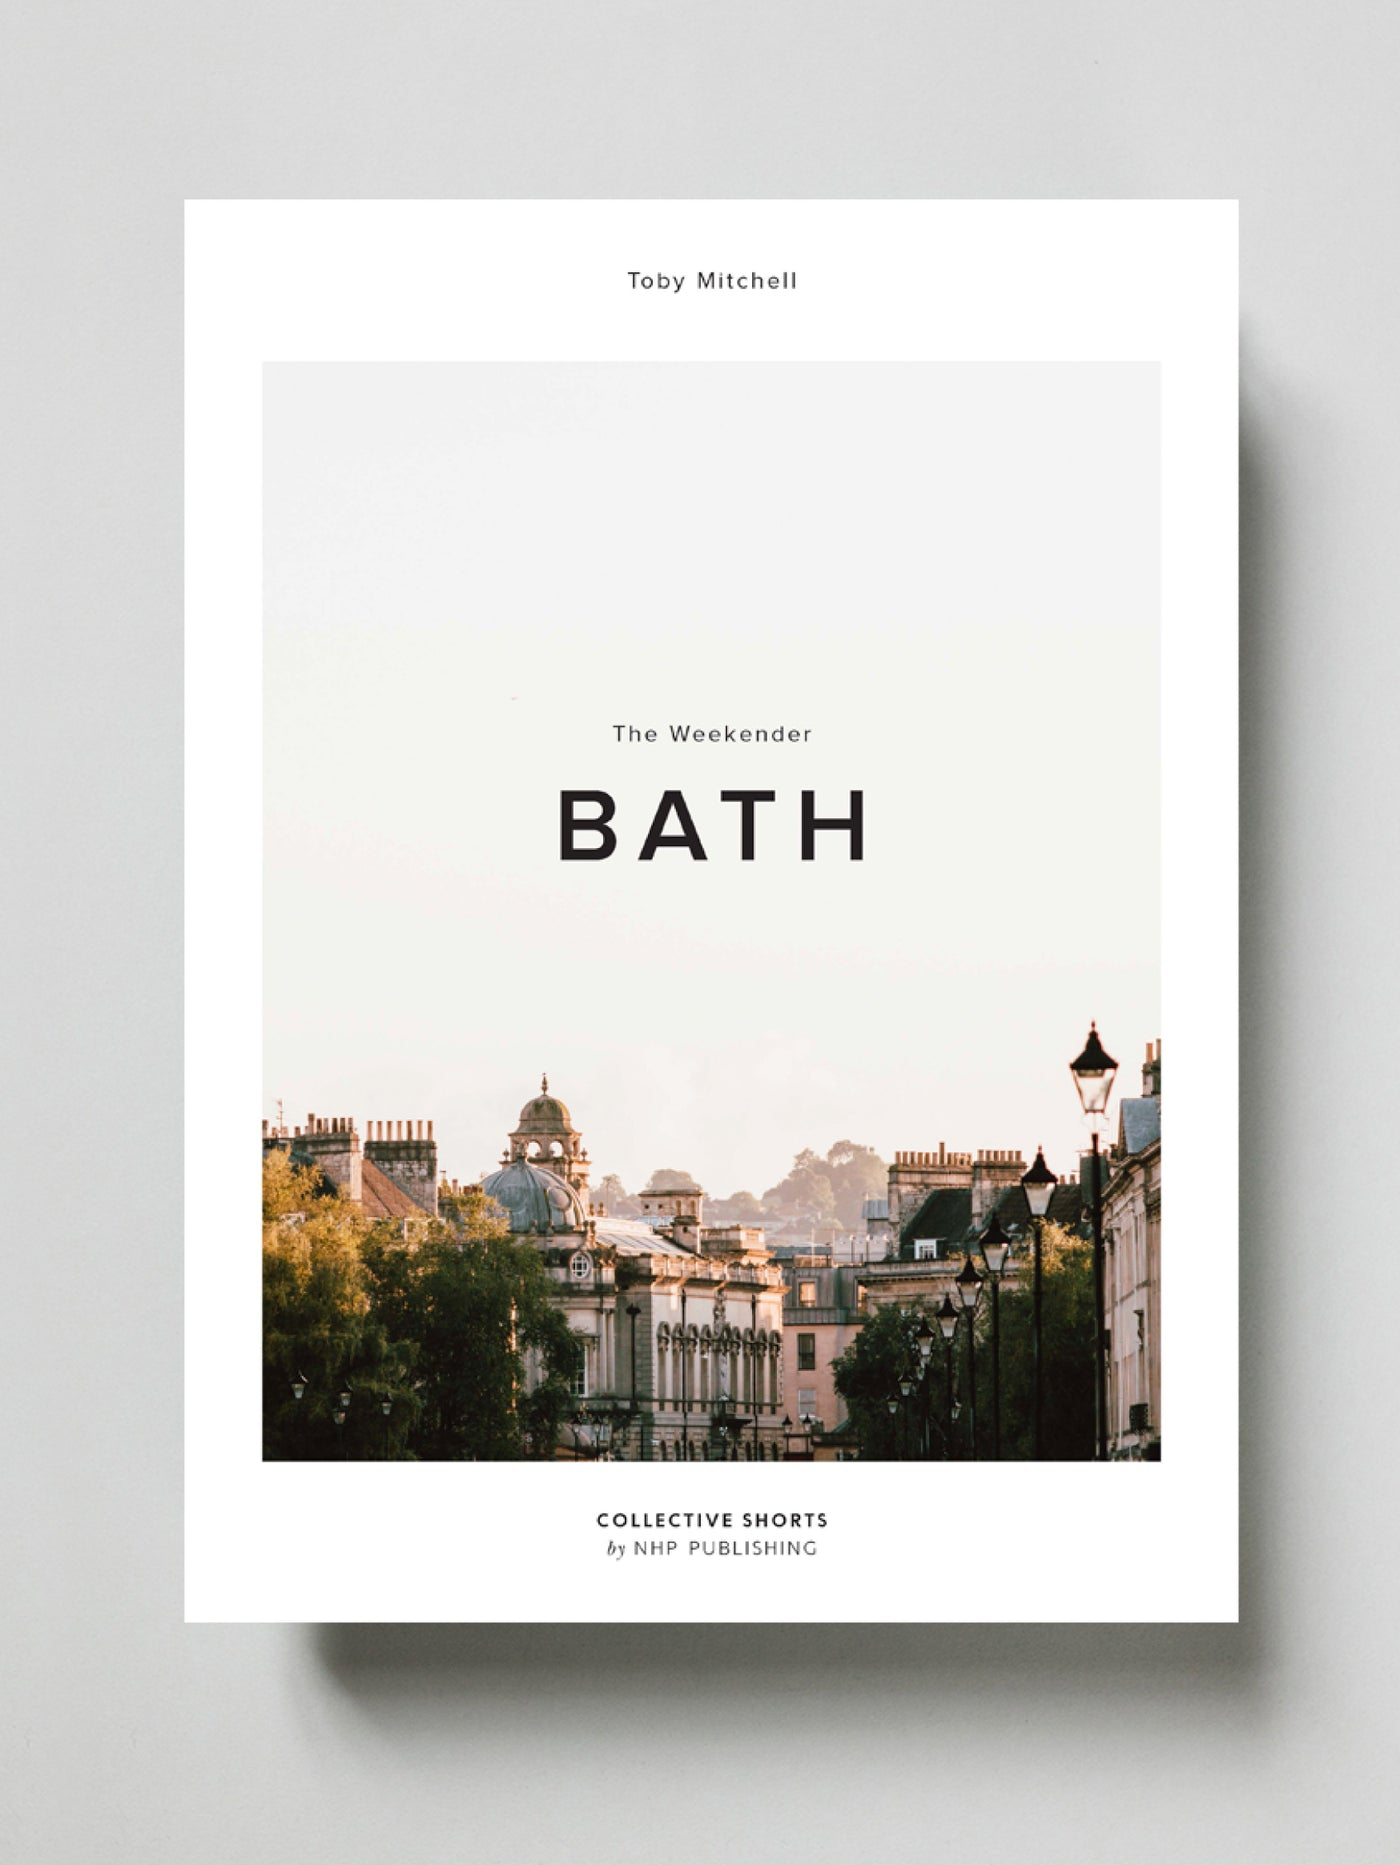 The Weekender: Bath